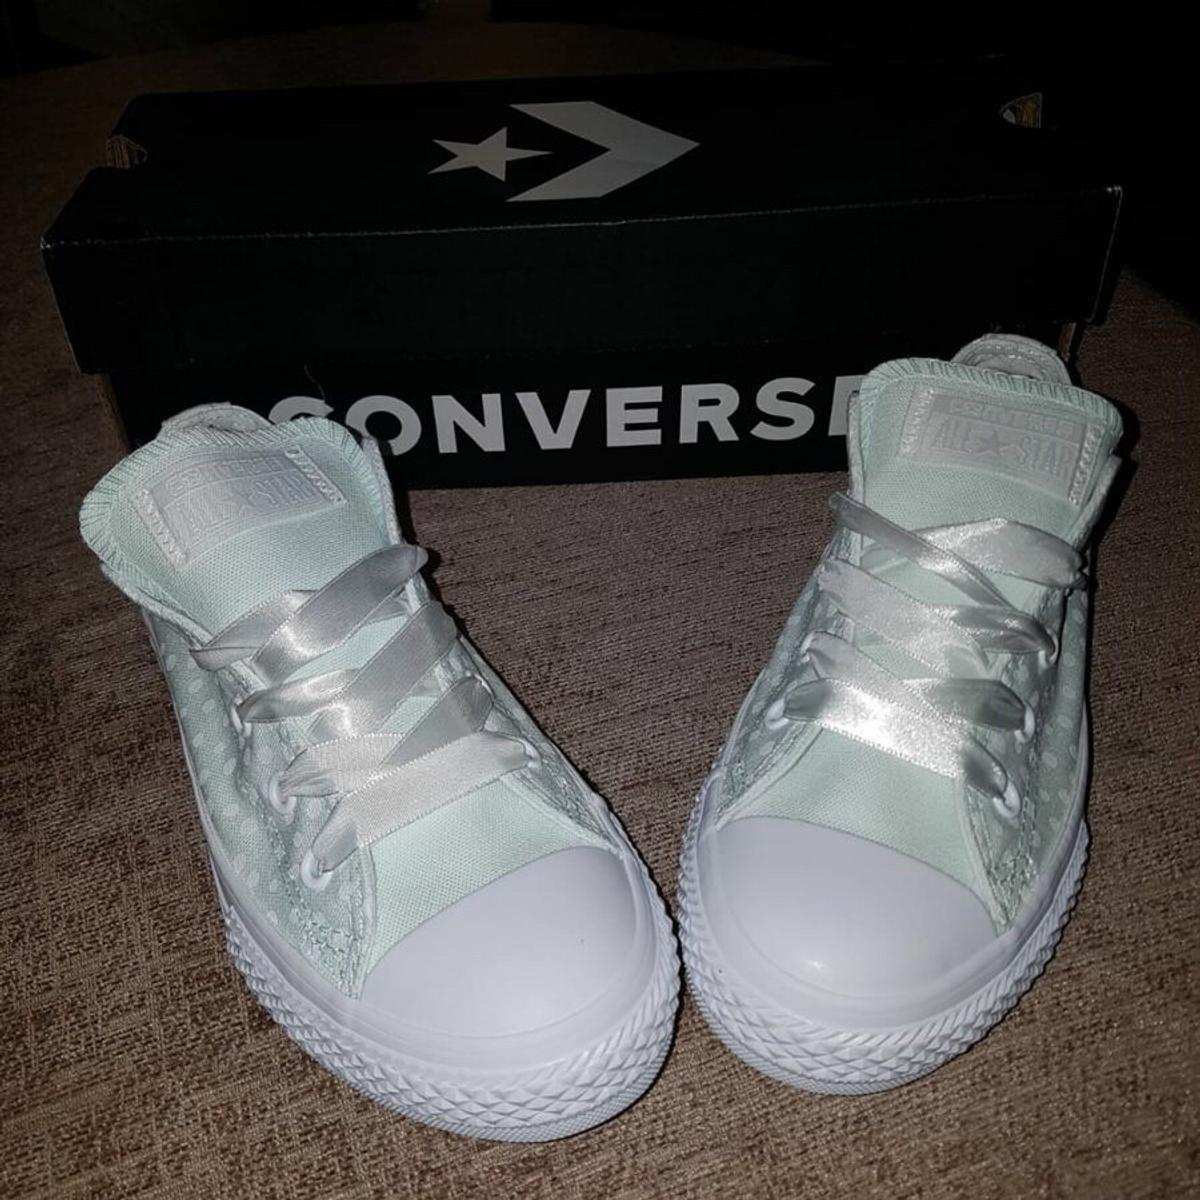 2b85b20a81cb83 Girls CONVERSE light green Shoes Size 1 NEW in BL5 Westhoughton for ...